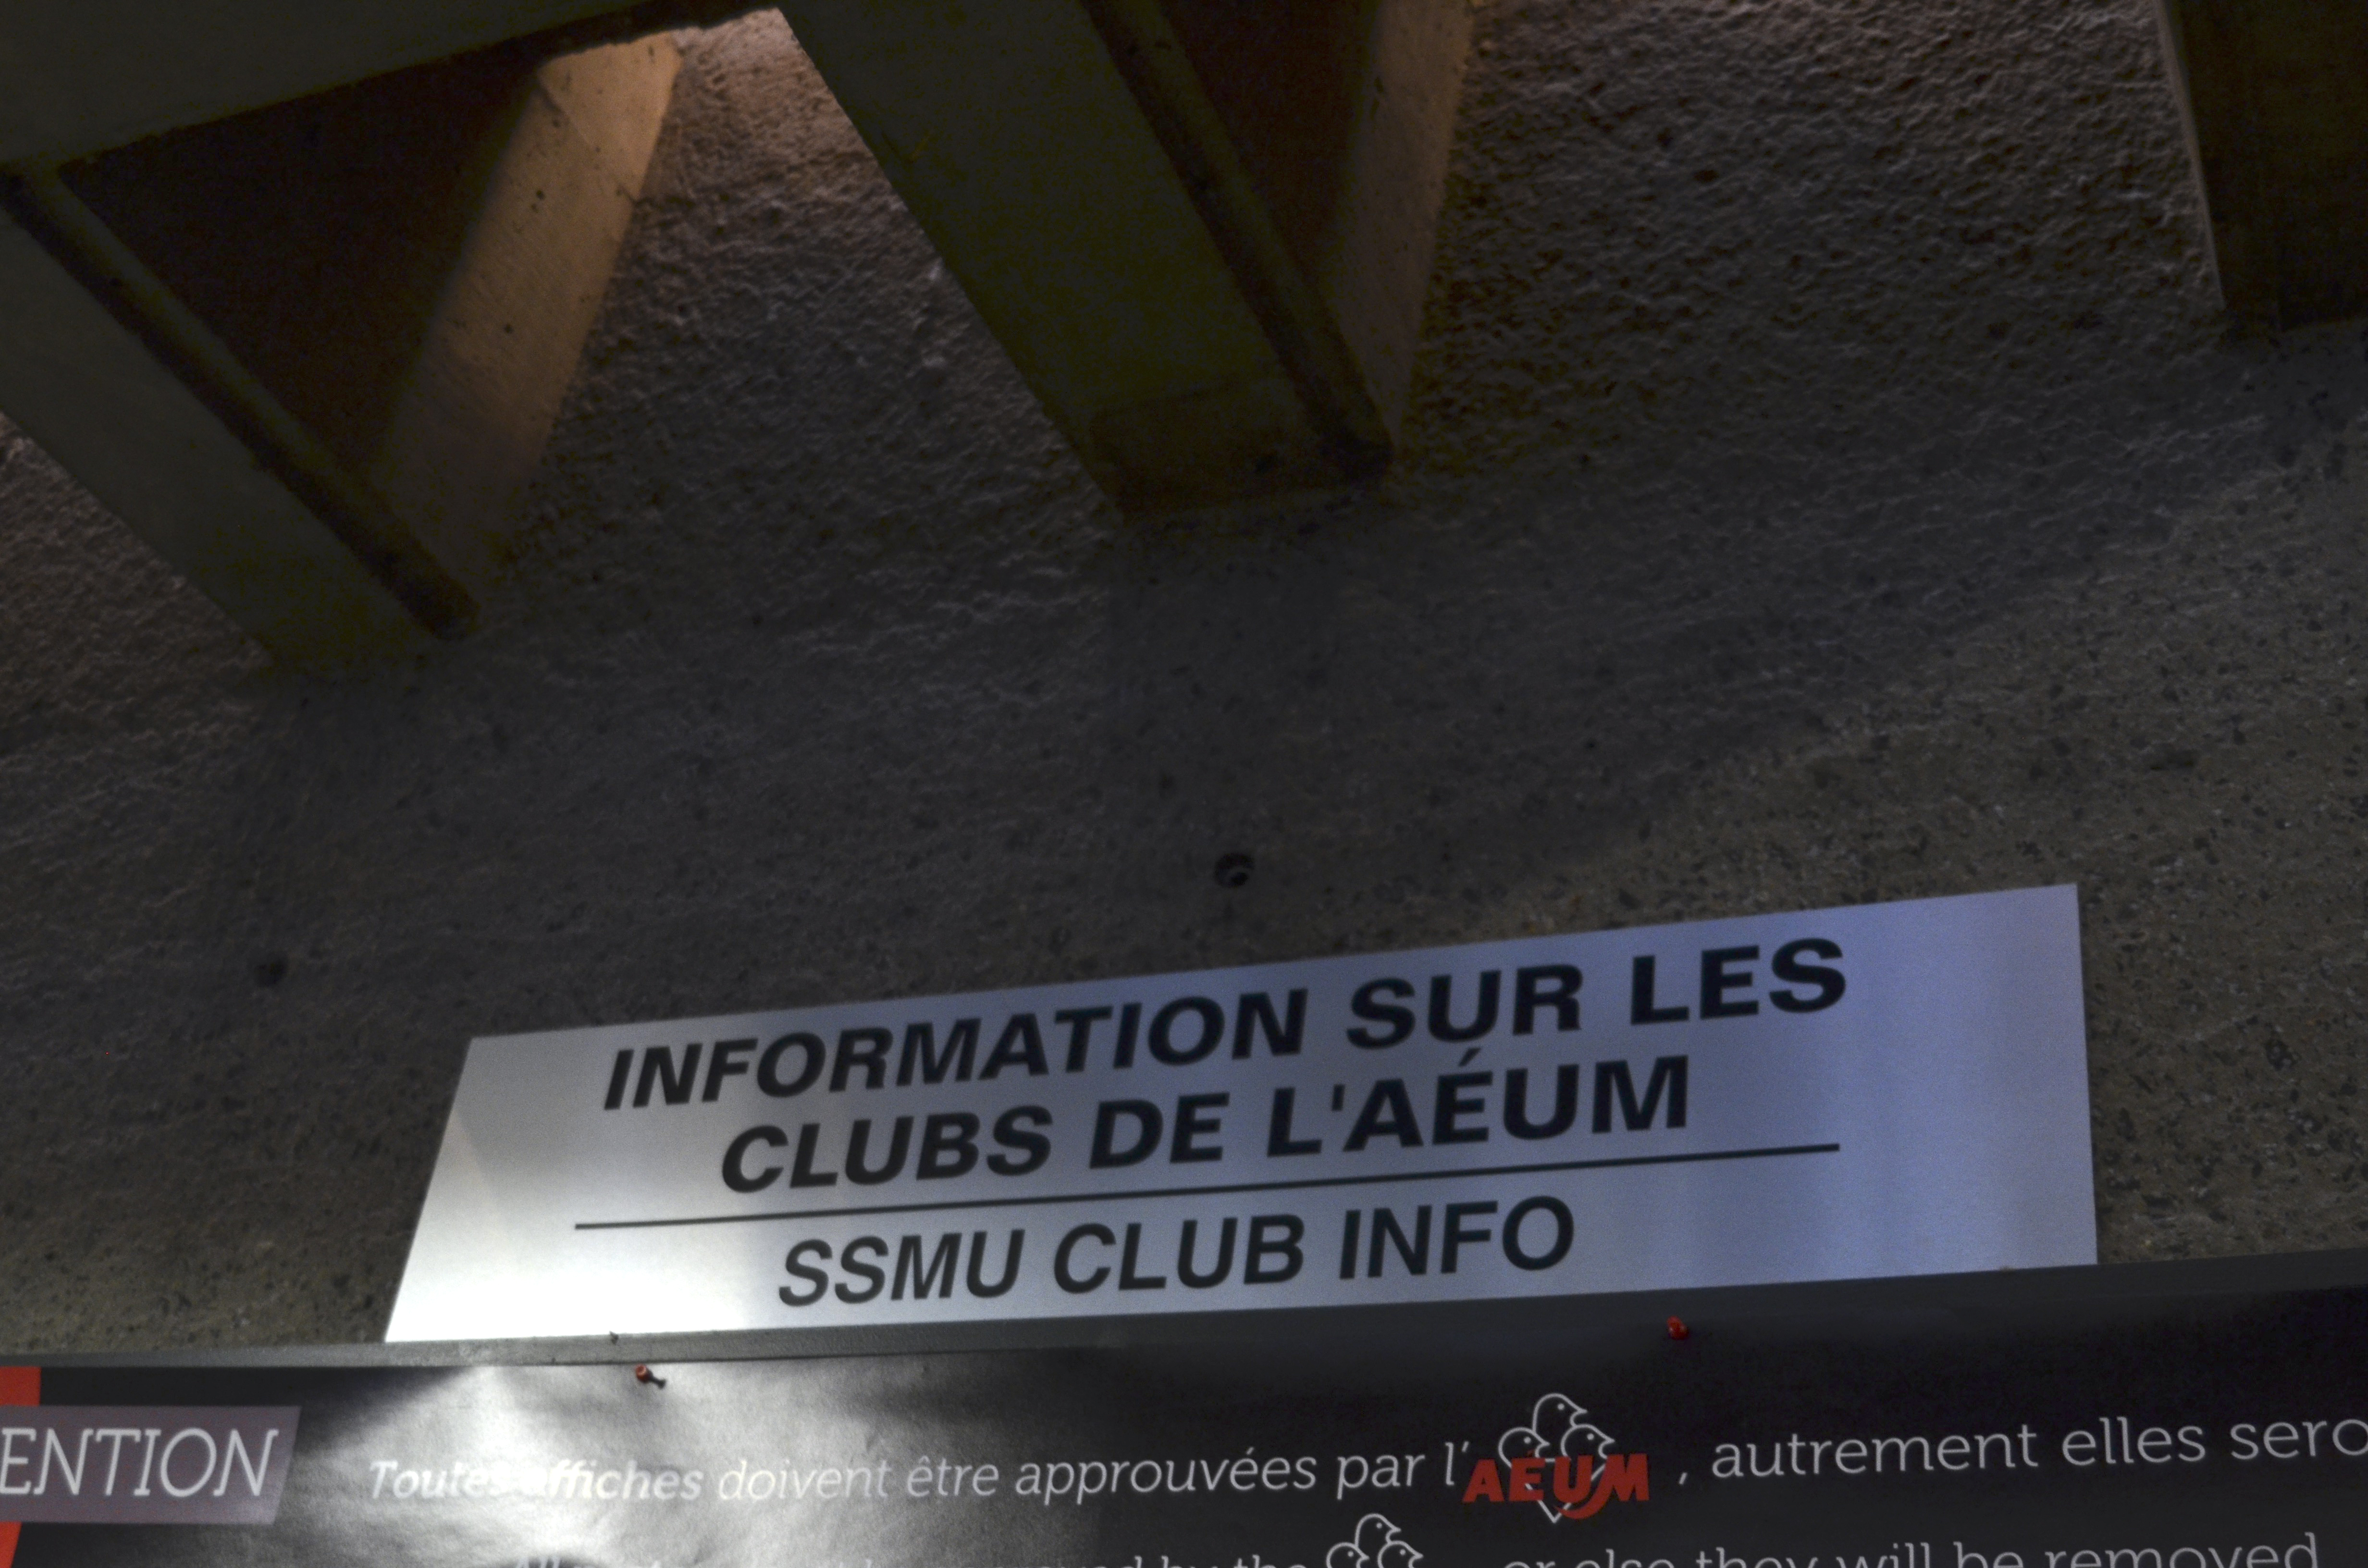 """A photograph of the clubs info sign in the Shatner building that says """"Information Sur Les Clubs de L'AEUM"""""""